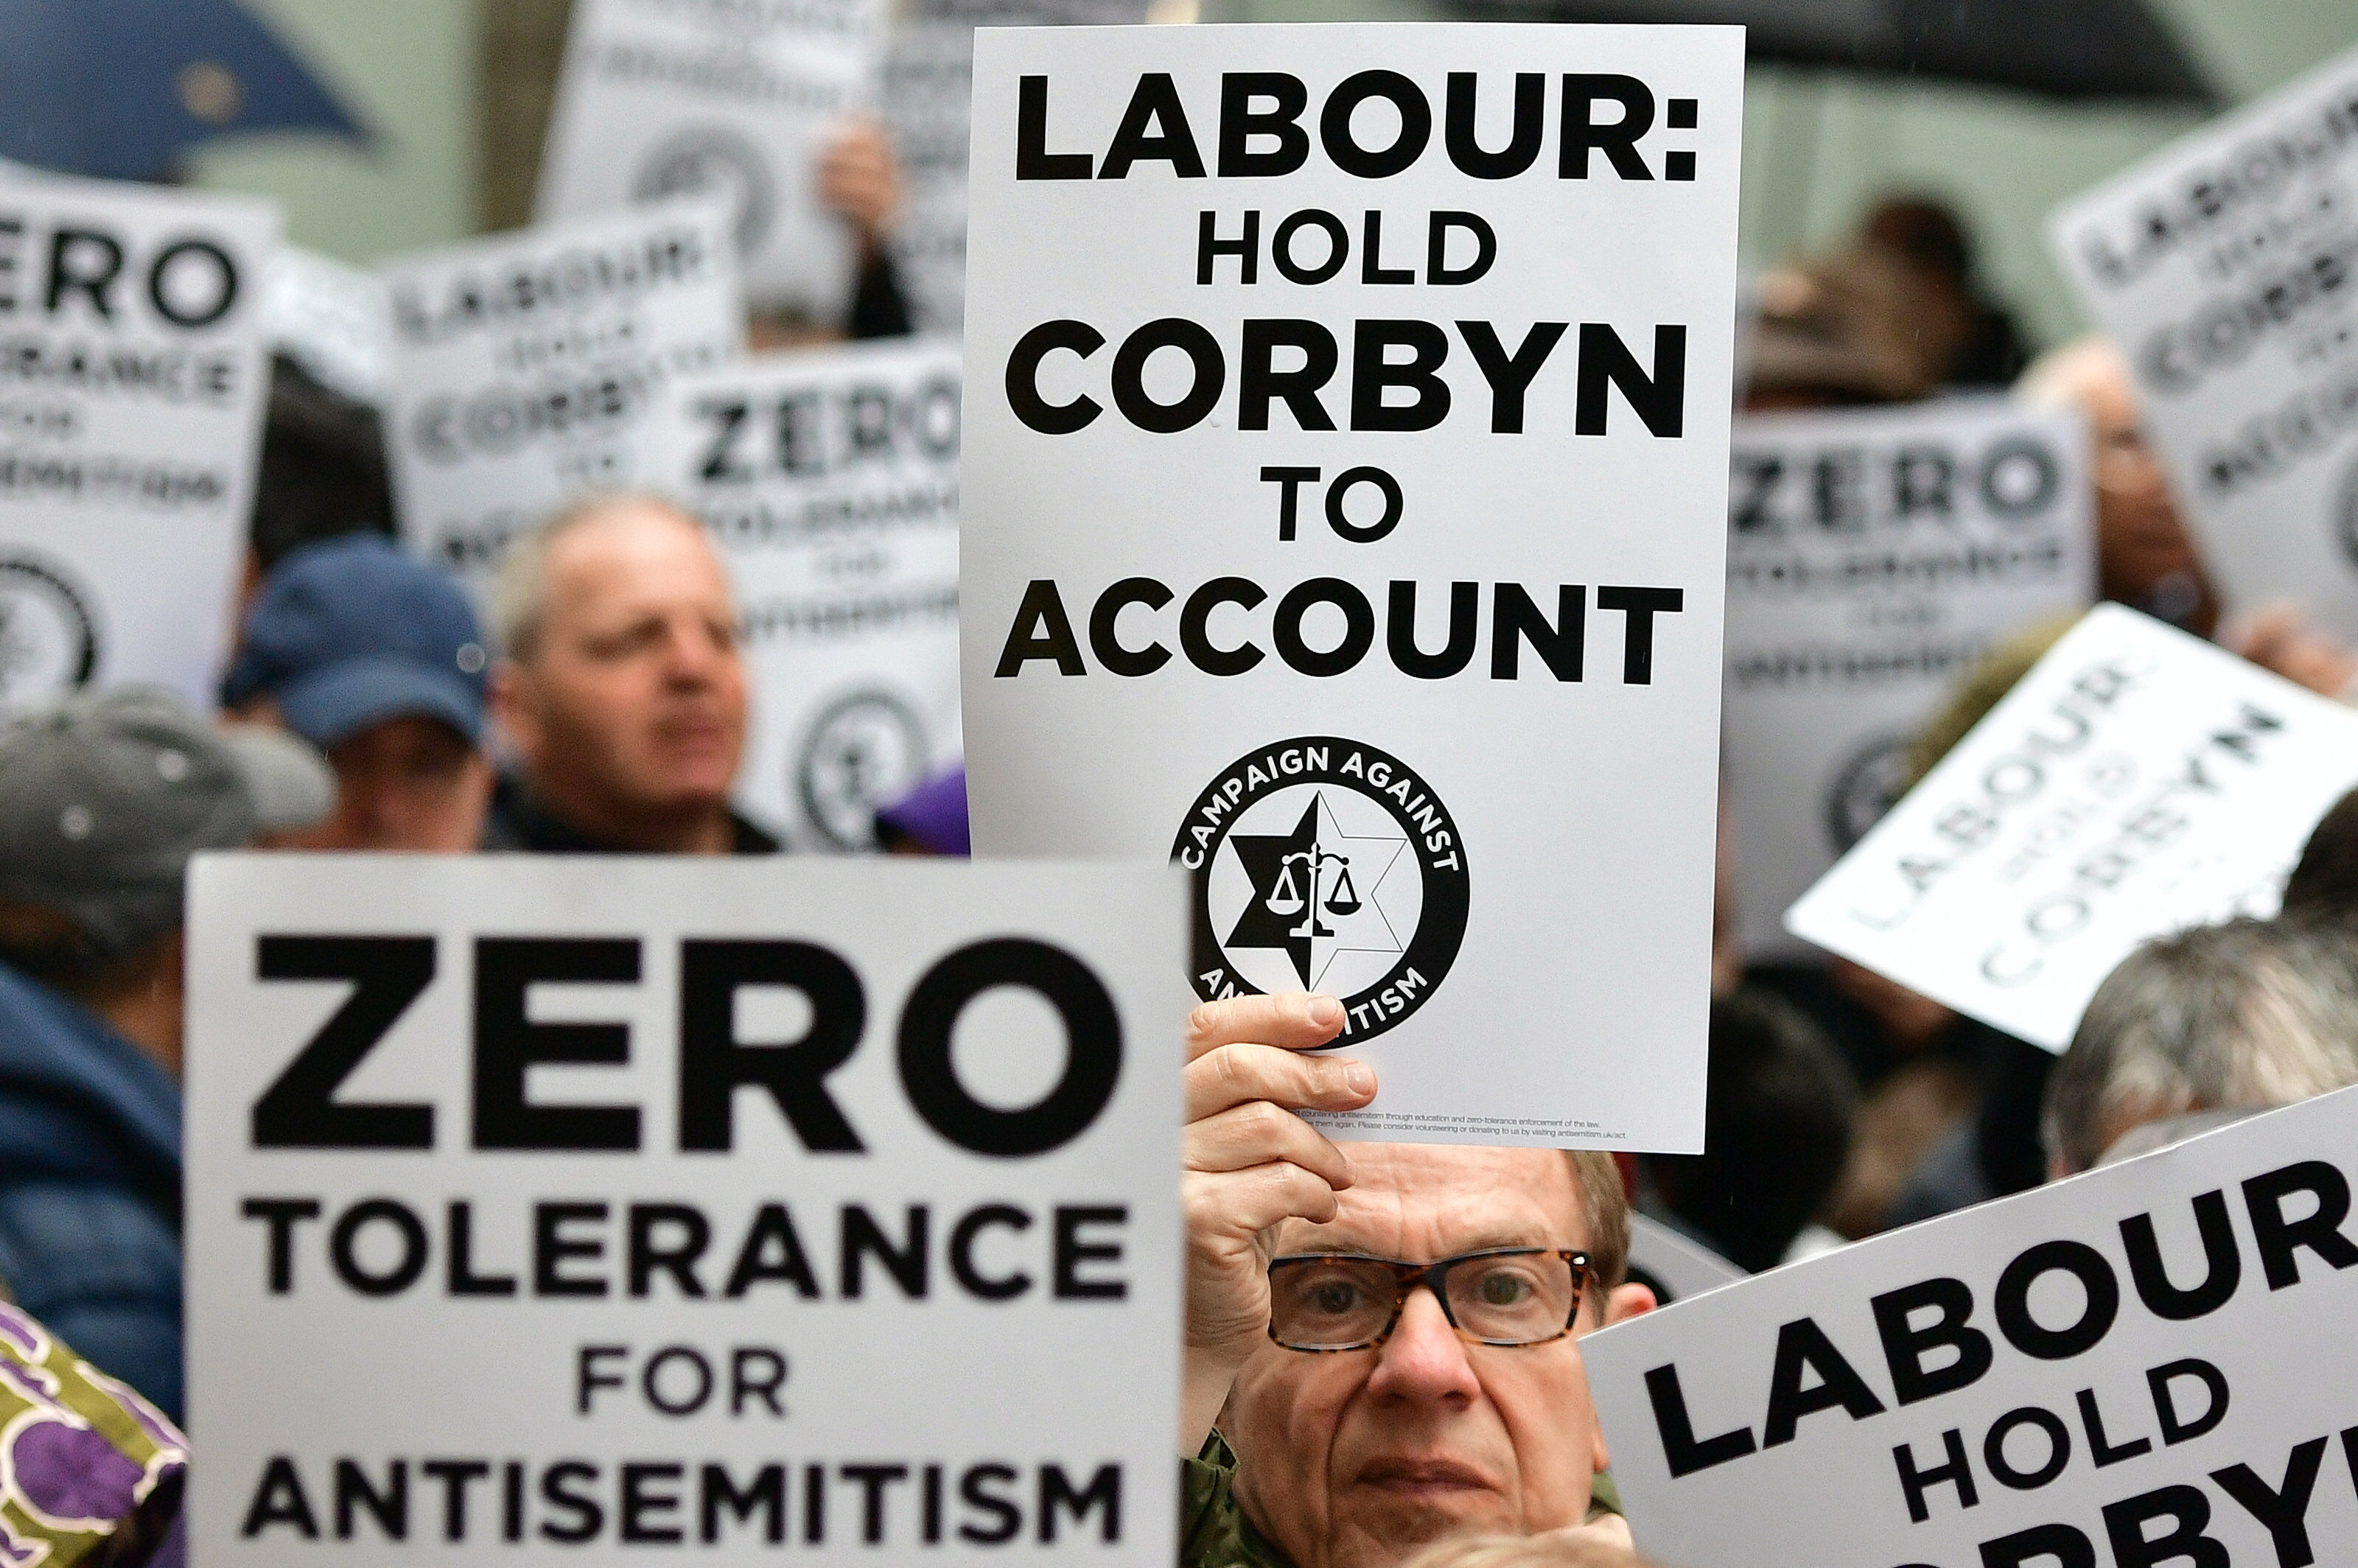 Anti-semitism in Labour protest